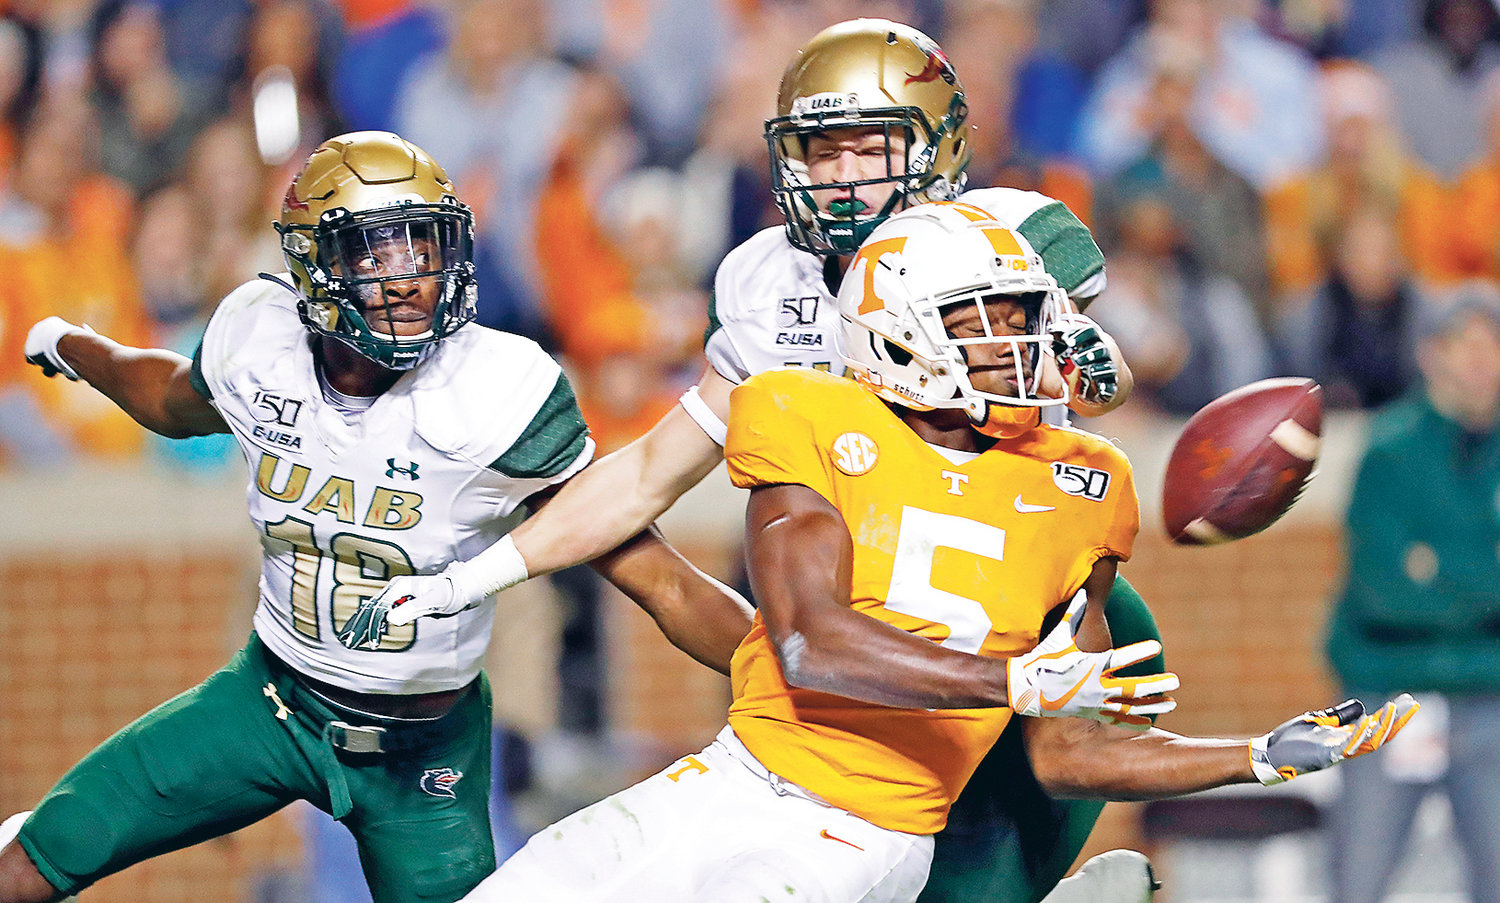 TENNESSEE WIDE RECEIVER Josh Palmer (5) tries to make a catch as he's defended by UAB's TD Marshall (18) in the second half, in Knoxville.